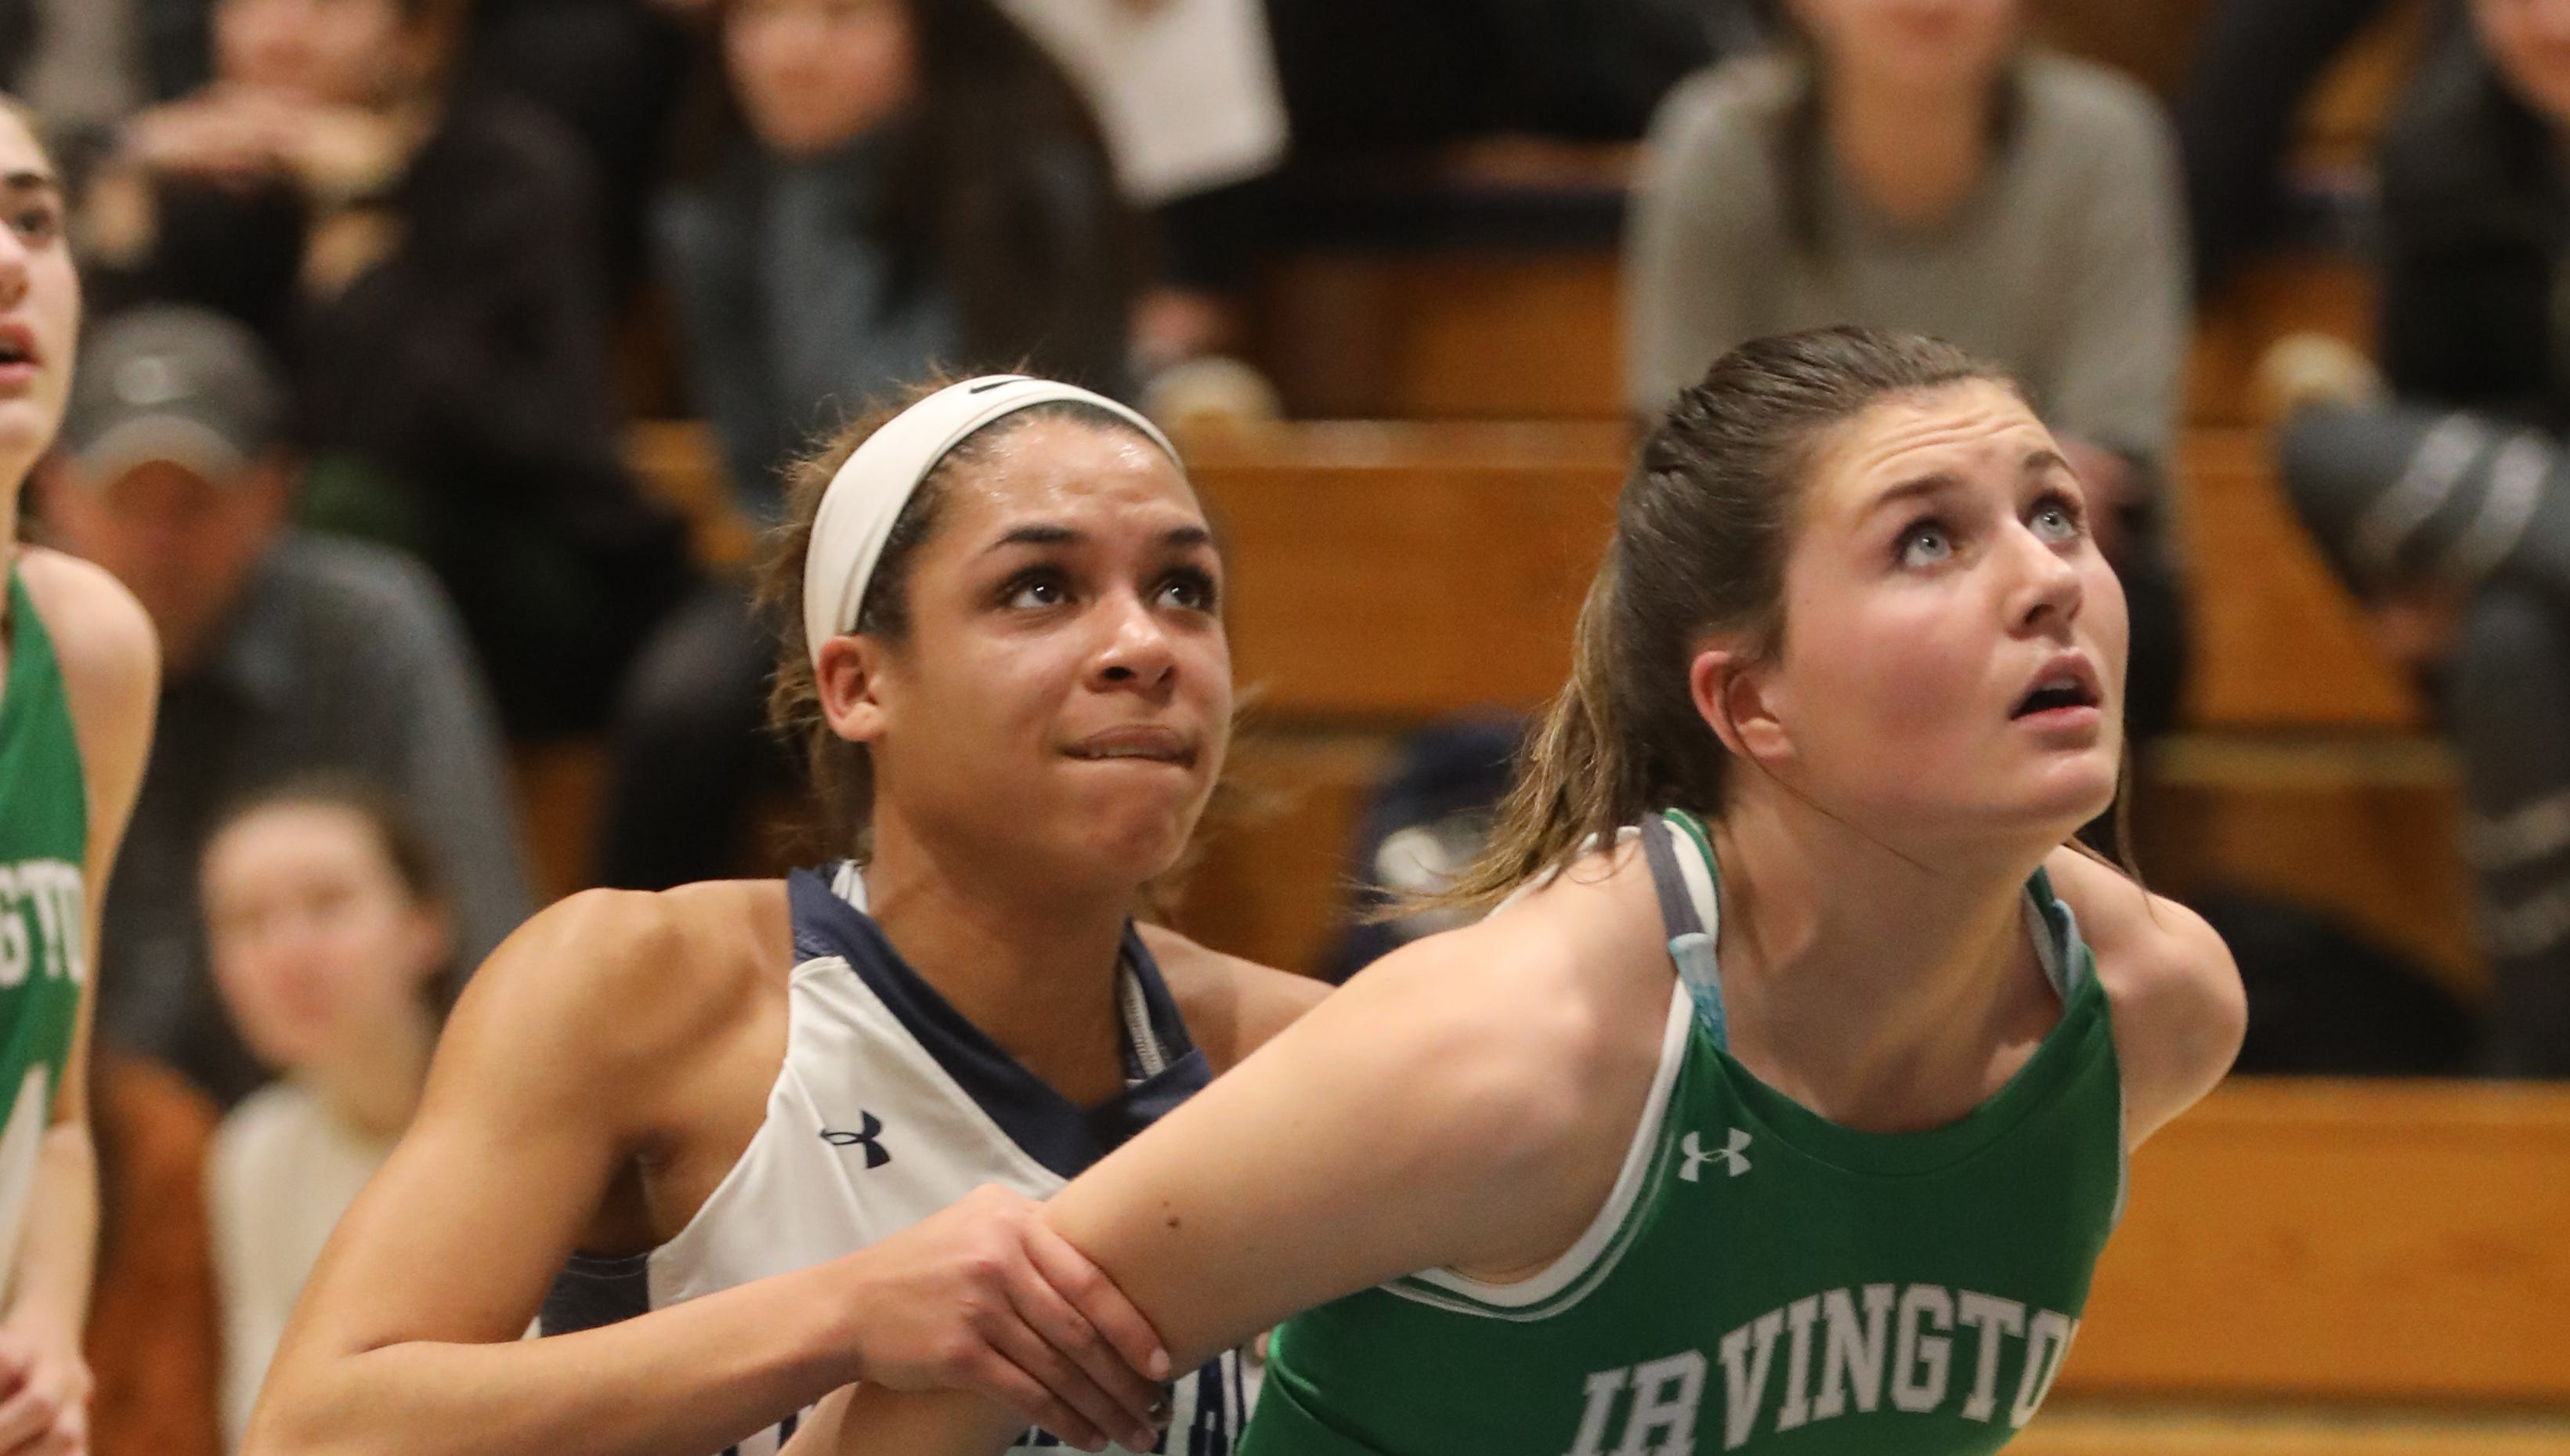 Irvington's Mia Mascone (14) box out Putnam Valley's Cyera Daughtry (4) for the rebound during girls basketball game at Putnam Valley High School on Jan. 7, 2019. Irvington defeats Putnam Valley 42-34.